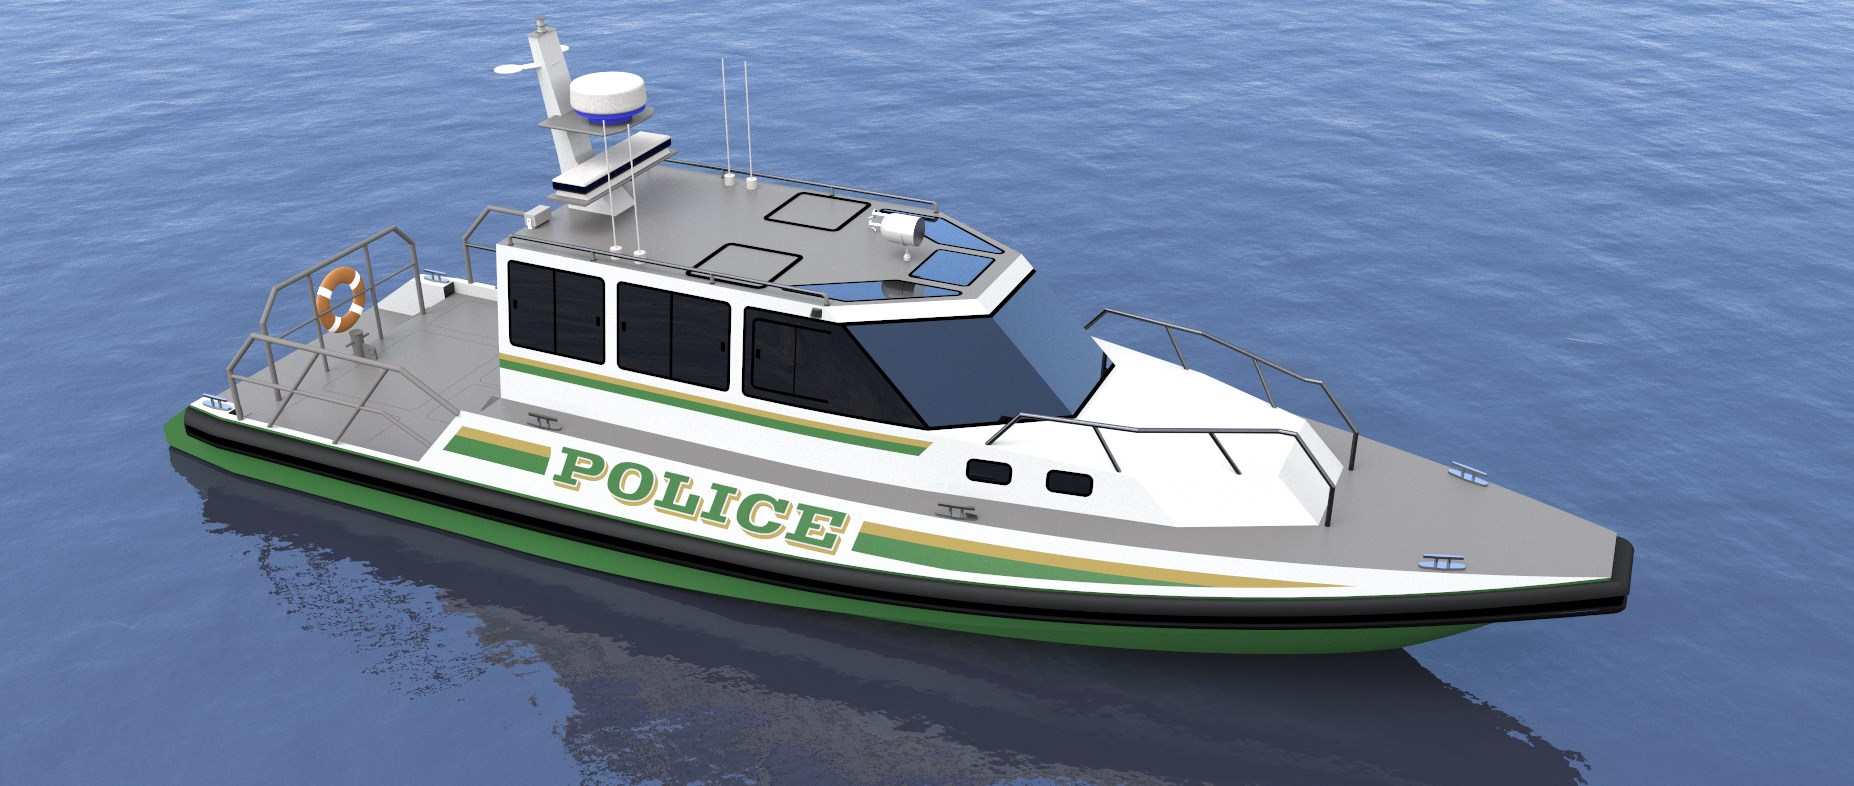 ' POLICE BOAT - AIREAL FRONT VIEW